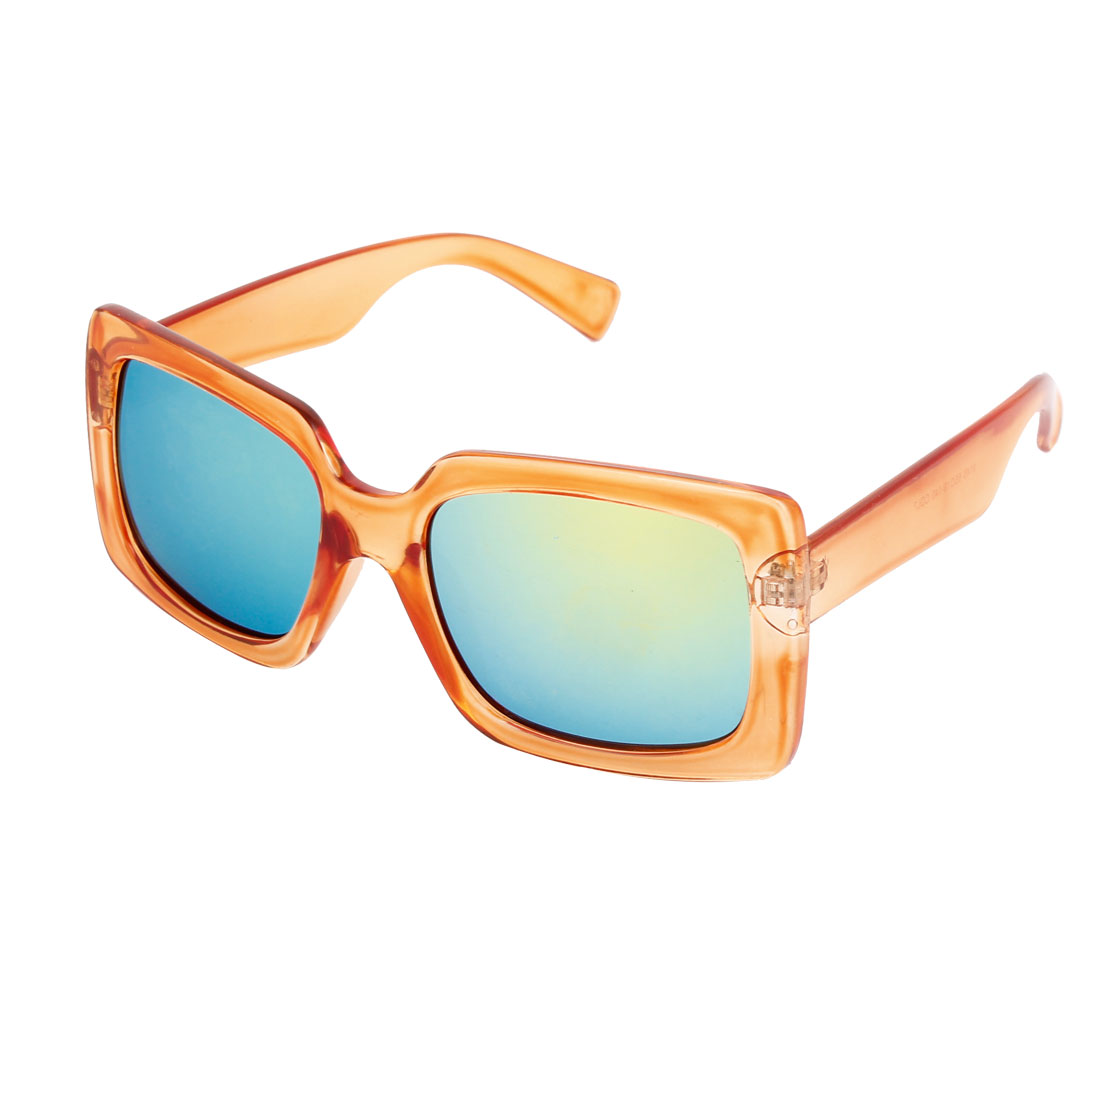 Single Bridge Wide Temple Orange Square Shape Full Rim Frame Blue Mirror Lens Beach Traveling Shopping Leisure Eyeglasses Sun Glasses